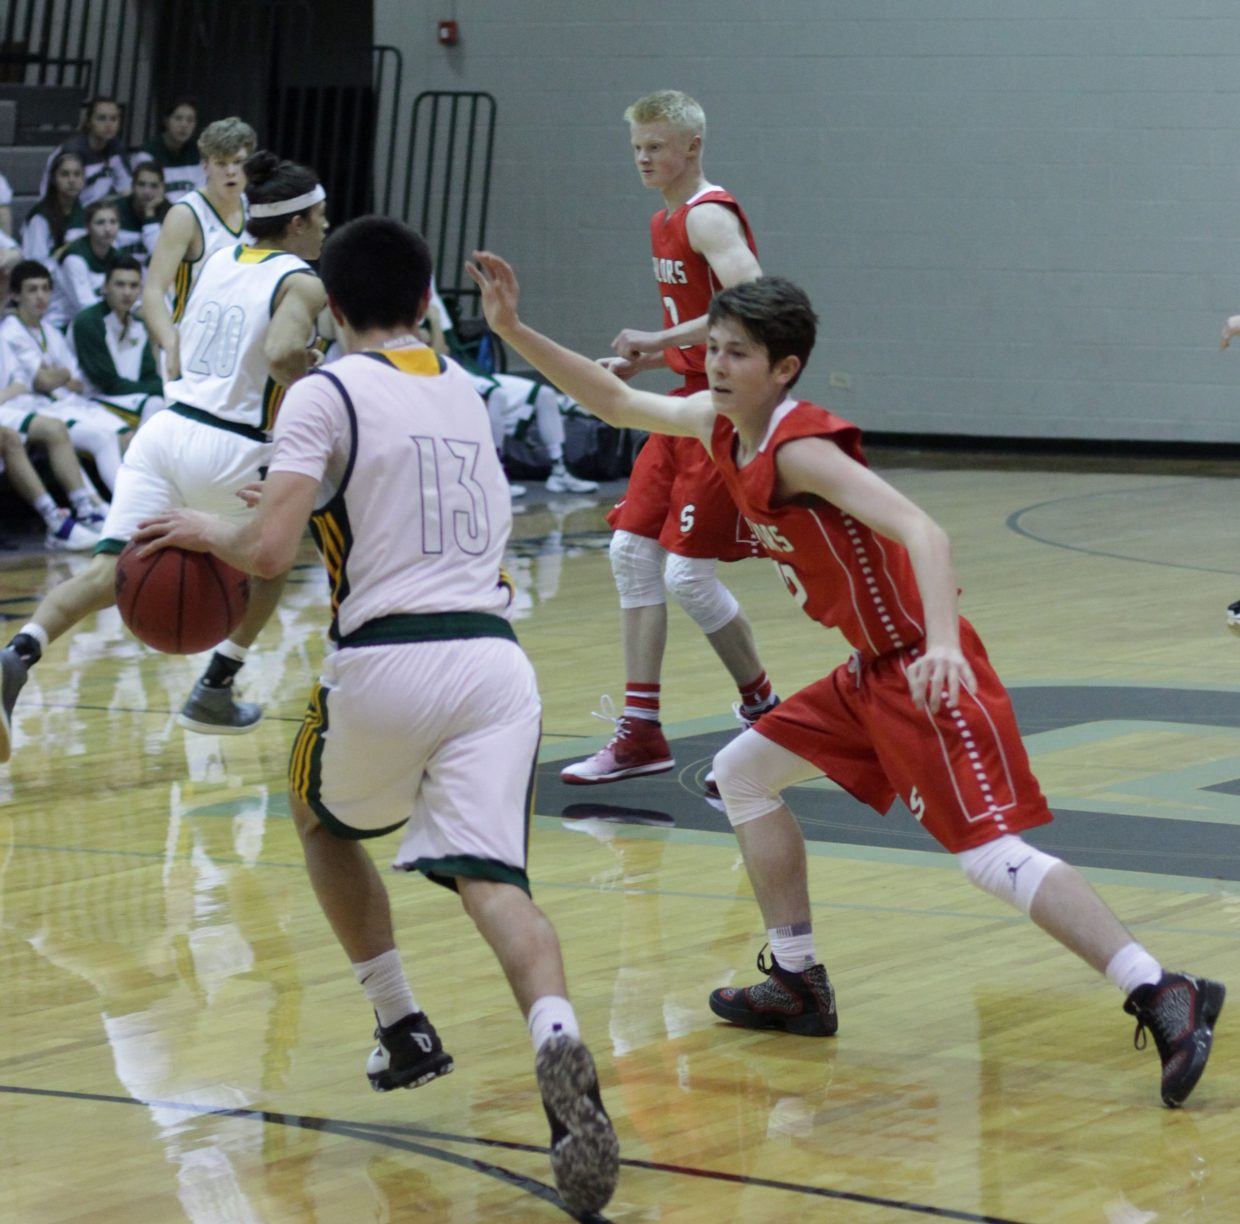 Steamboat's Connor Hansen applies defense during the Roughrider Shootout at Roosevelt High School.